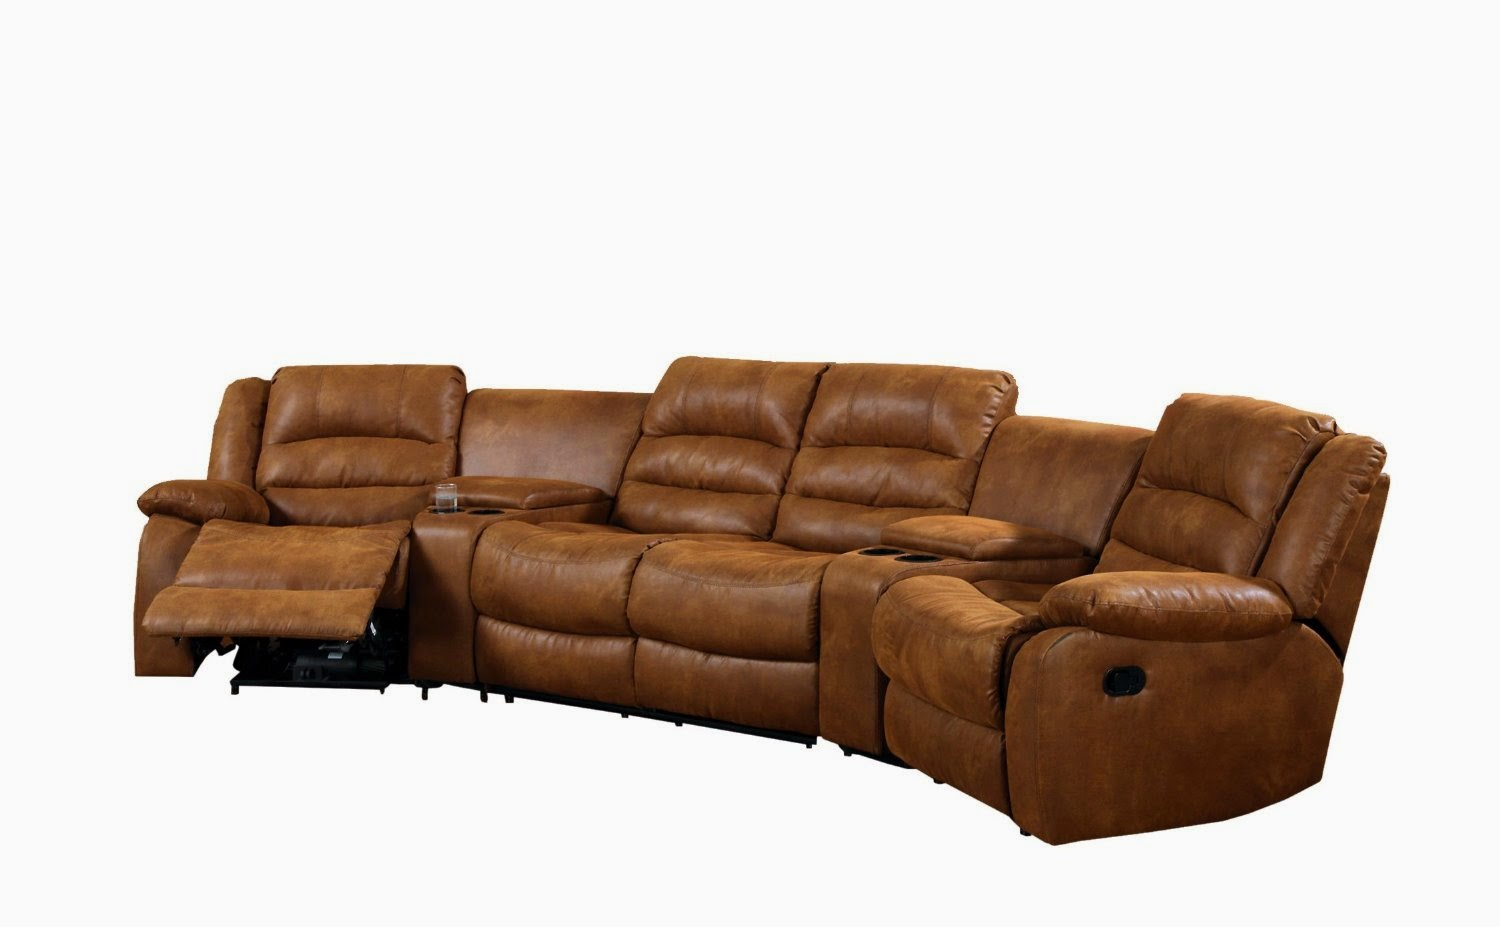 Cheap reclining sofas sale brown reclining sofa set Reclining loveseat sale